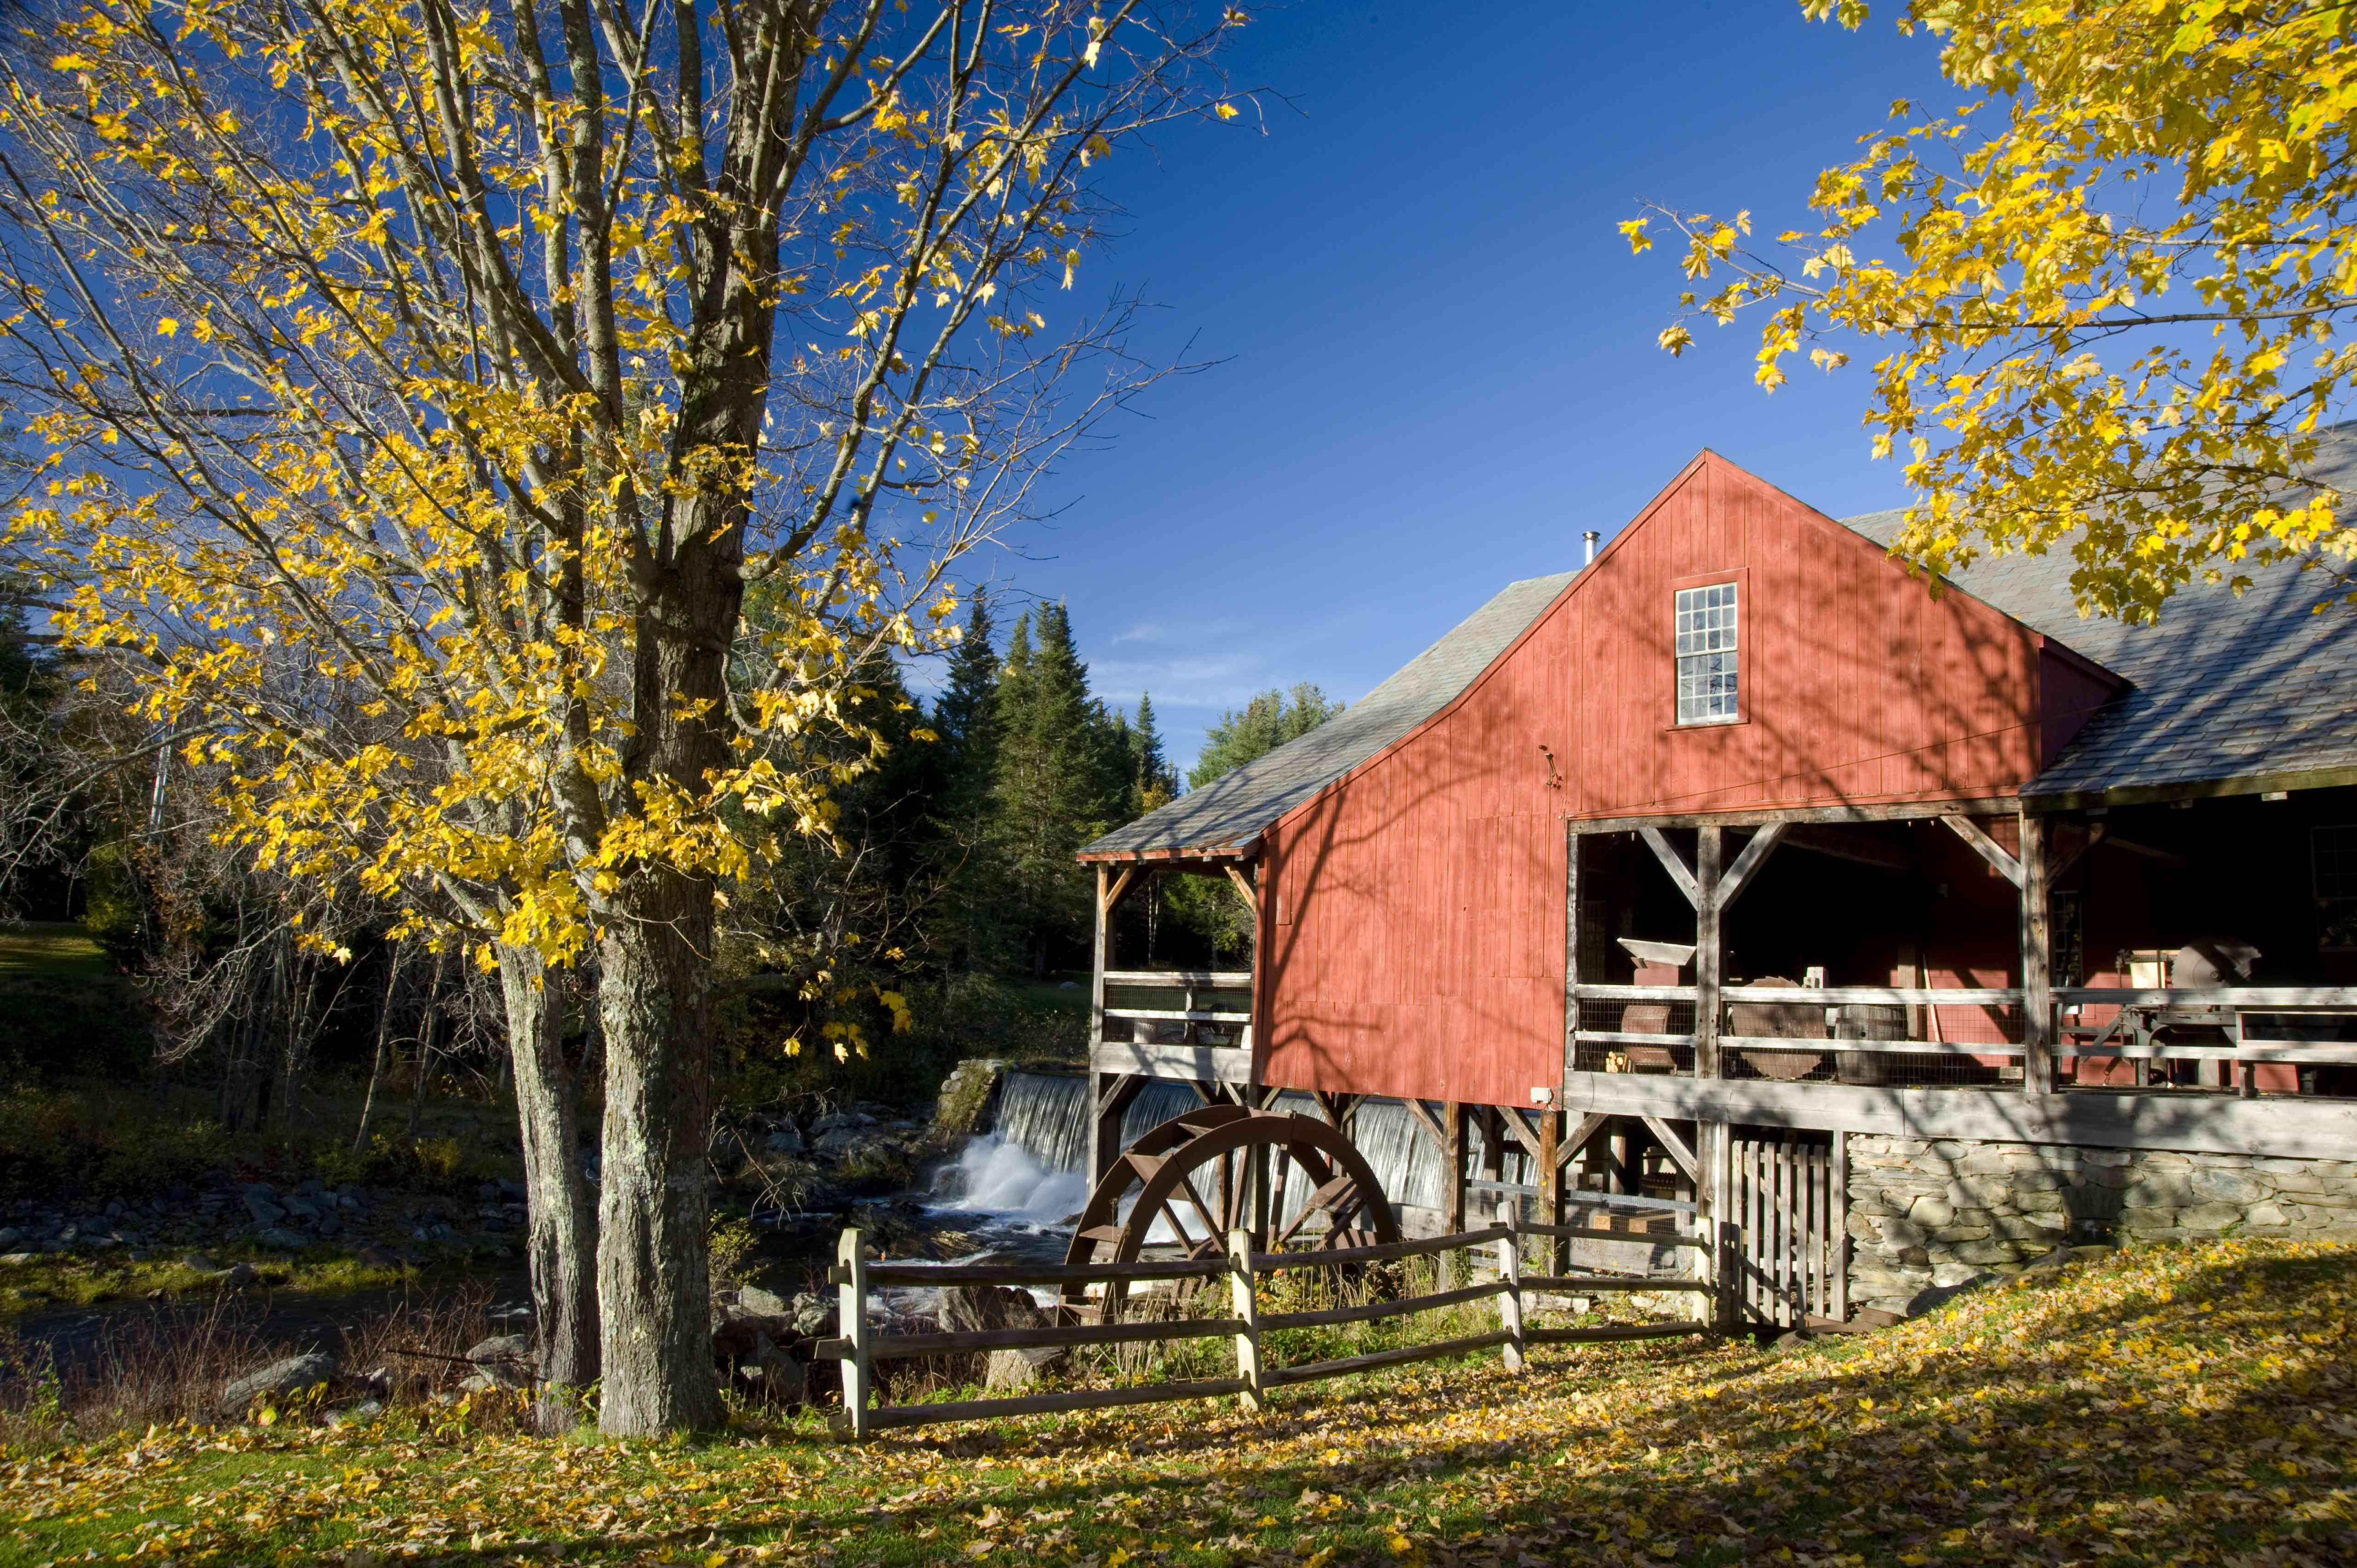 Old, red mill and waterfall surrounded by autumn leaves in Weston, Vermont